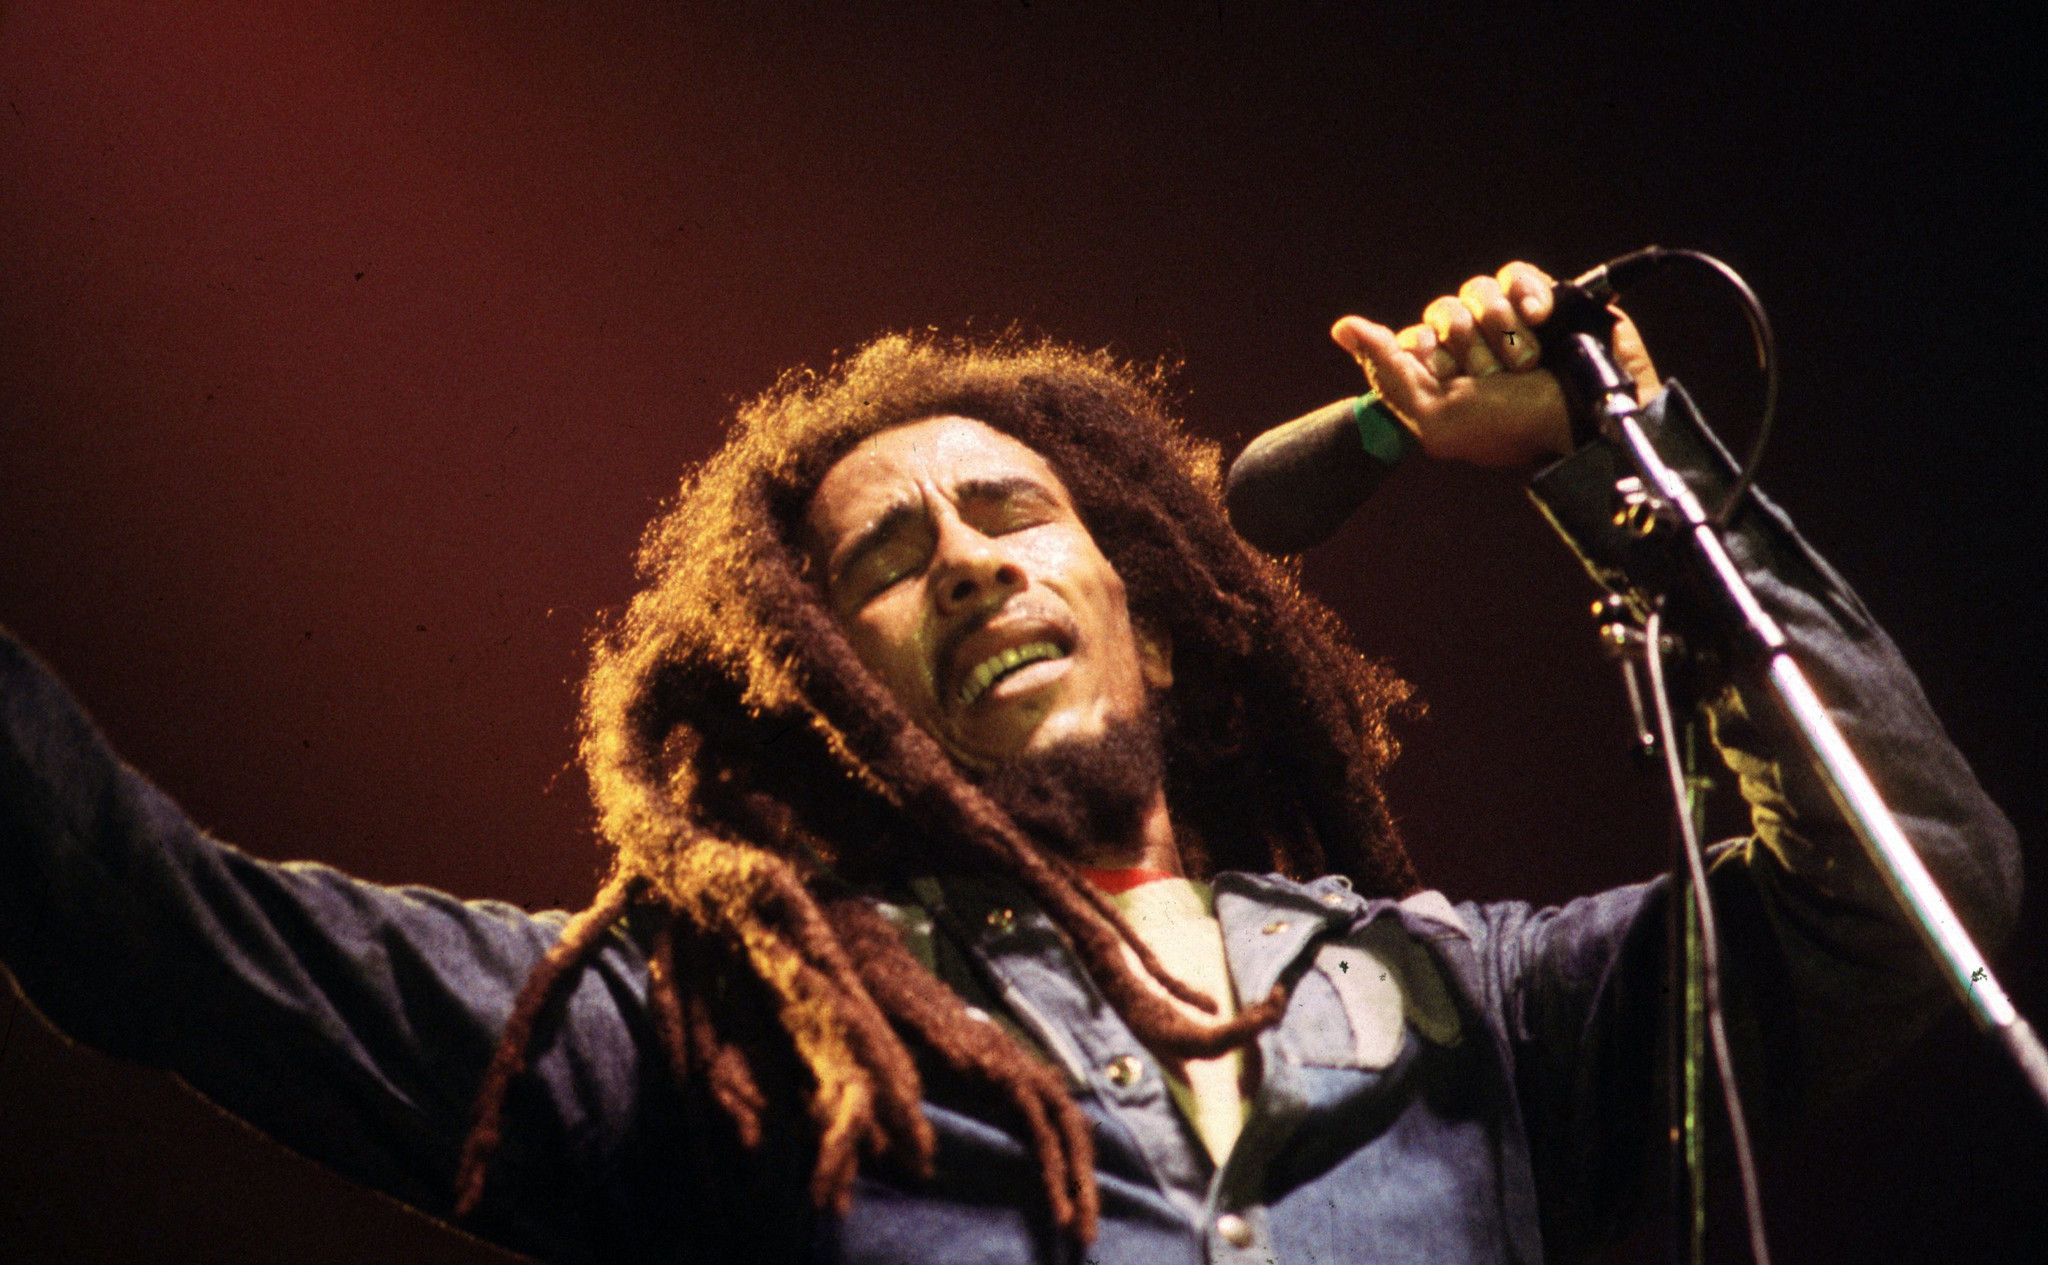 Bob Marley musical 'Get Up, Stand up!' to land on London's West End